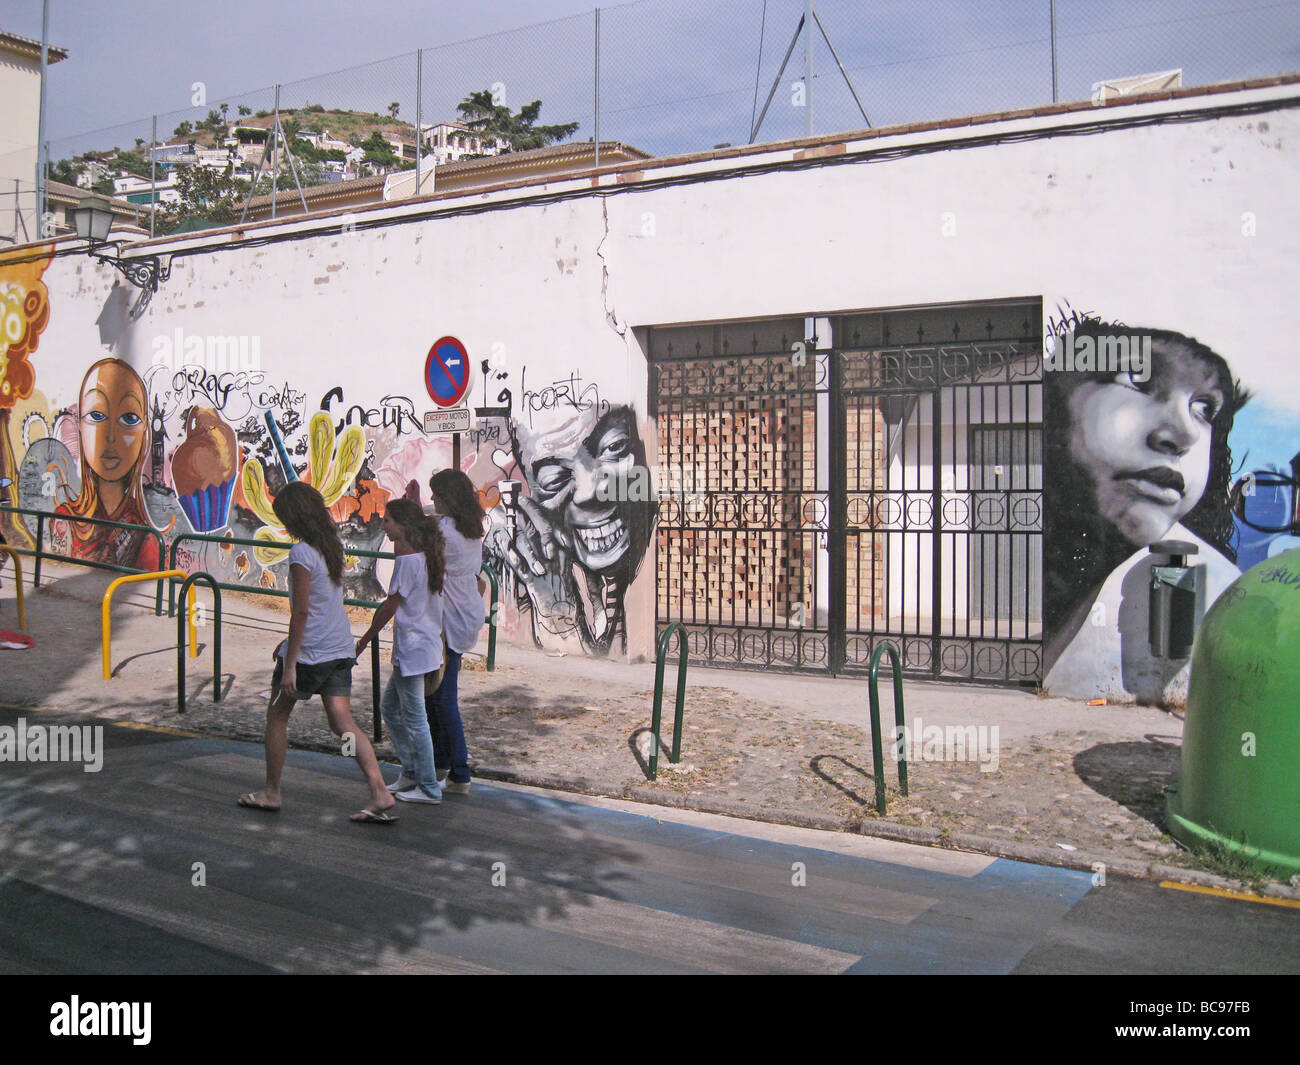 GRANADA, Spain. Wall art in the Realejo area of the city - Stock Image